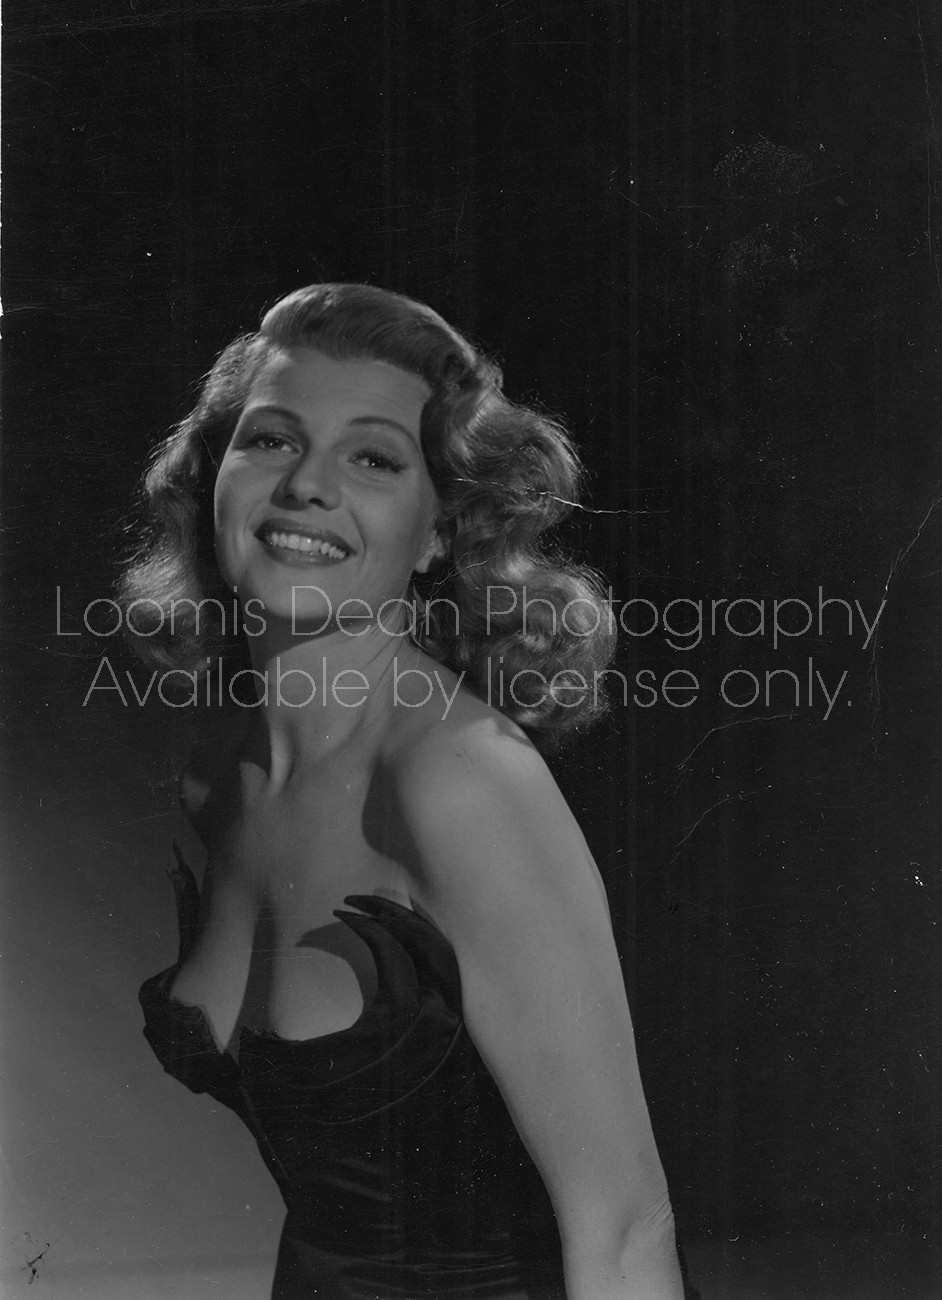 Rita hayworth porn videos download sexy movies